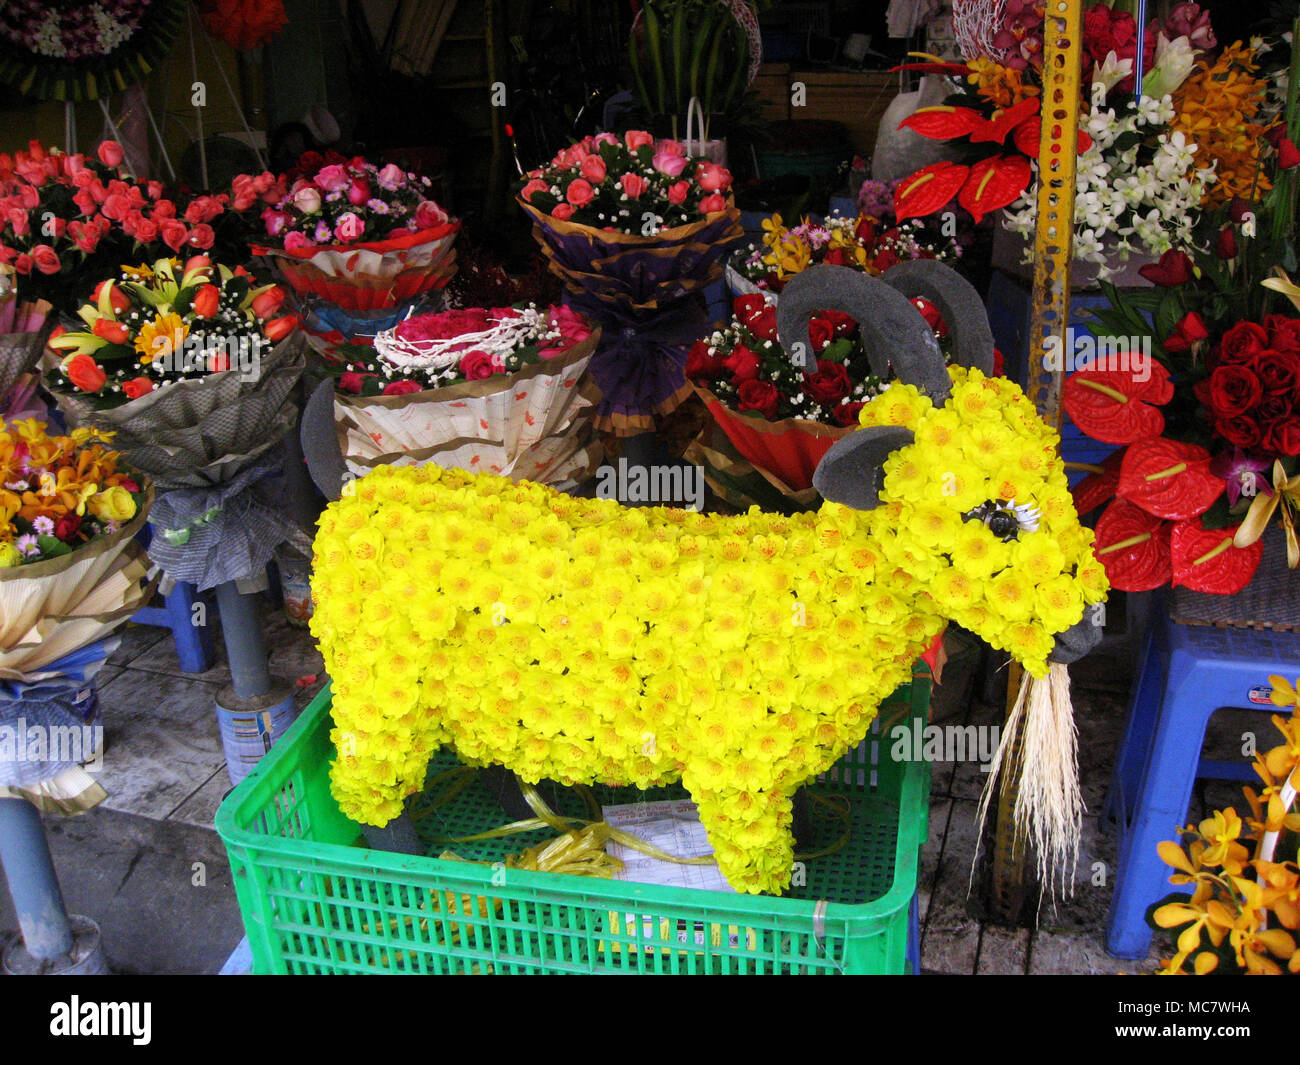 Goat composed of yellow apricot flowers in Saigon Chinese market representing the Year of the Goat - Stock Image